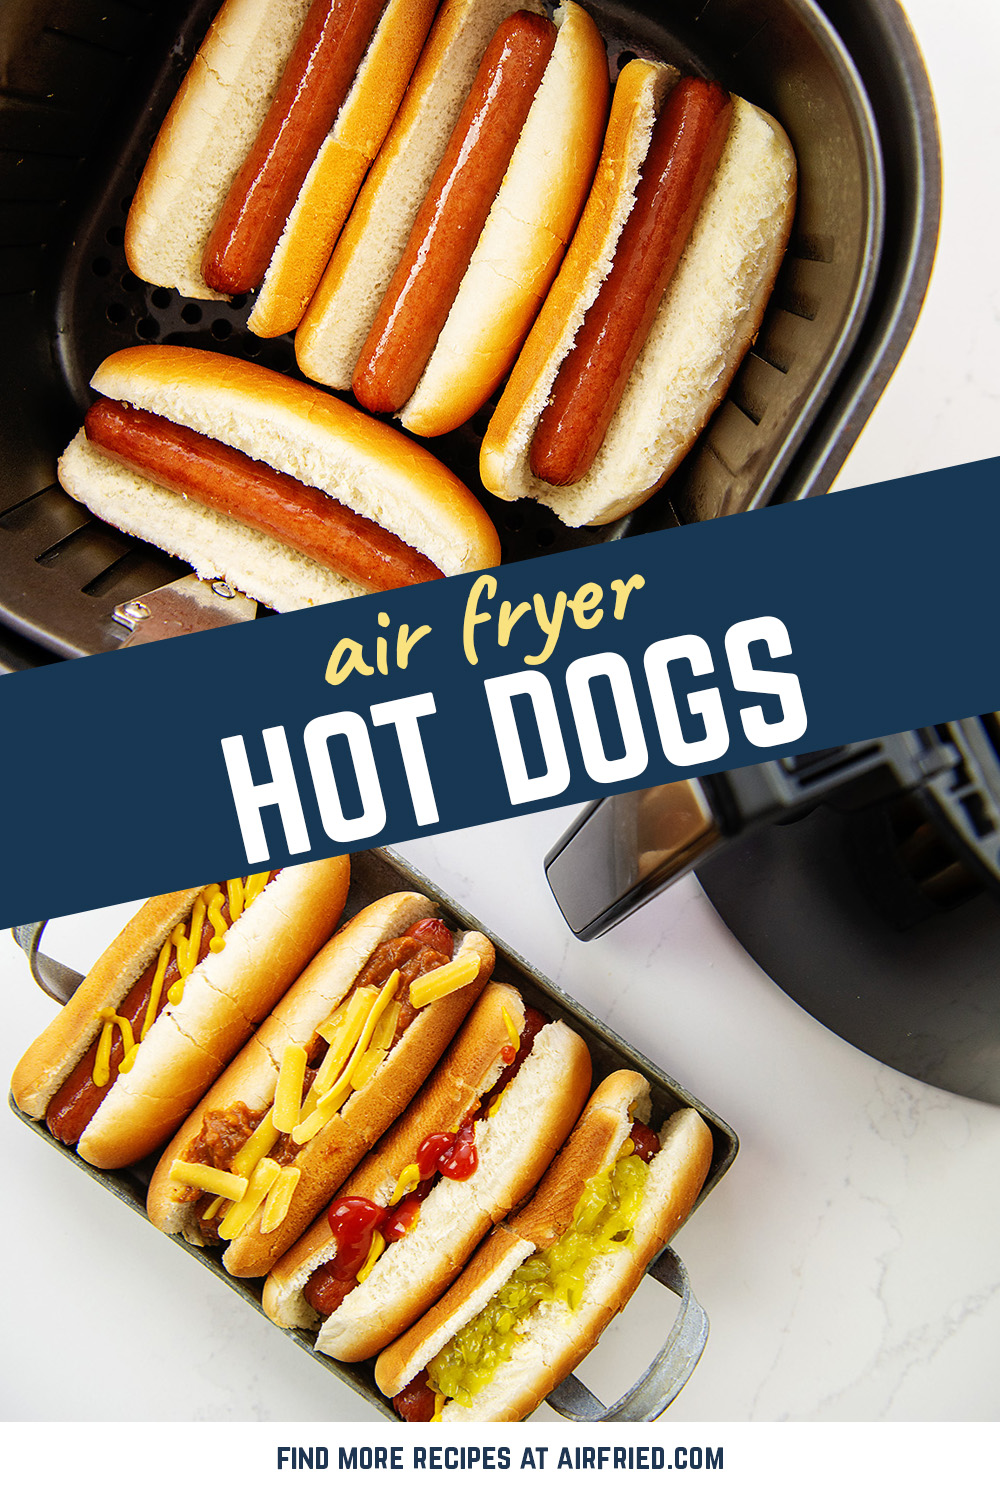 Perfectly cooked hot dogs in the air fryer! Toast your buns in the air fryer, too! So easy!